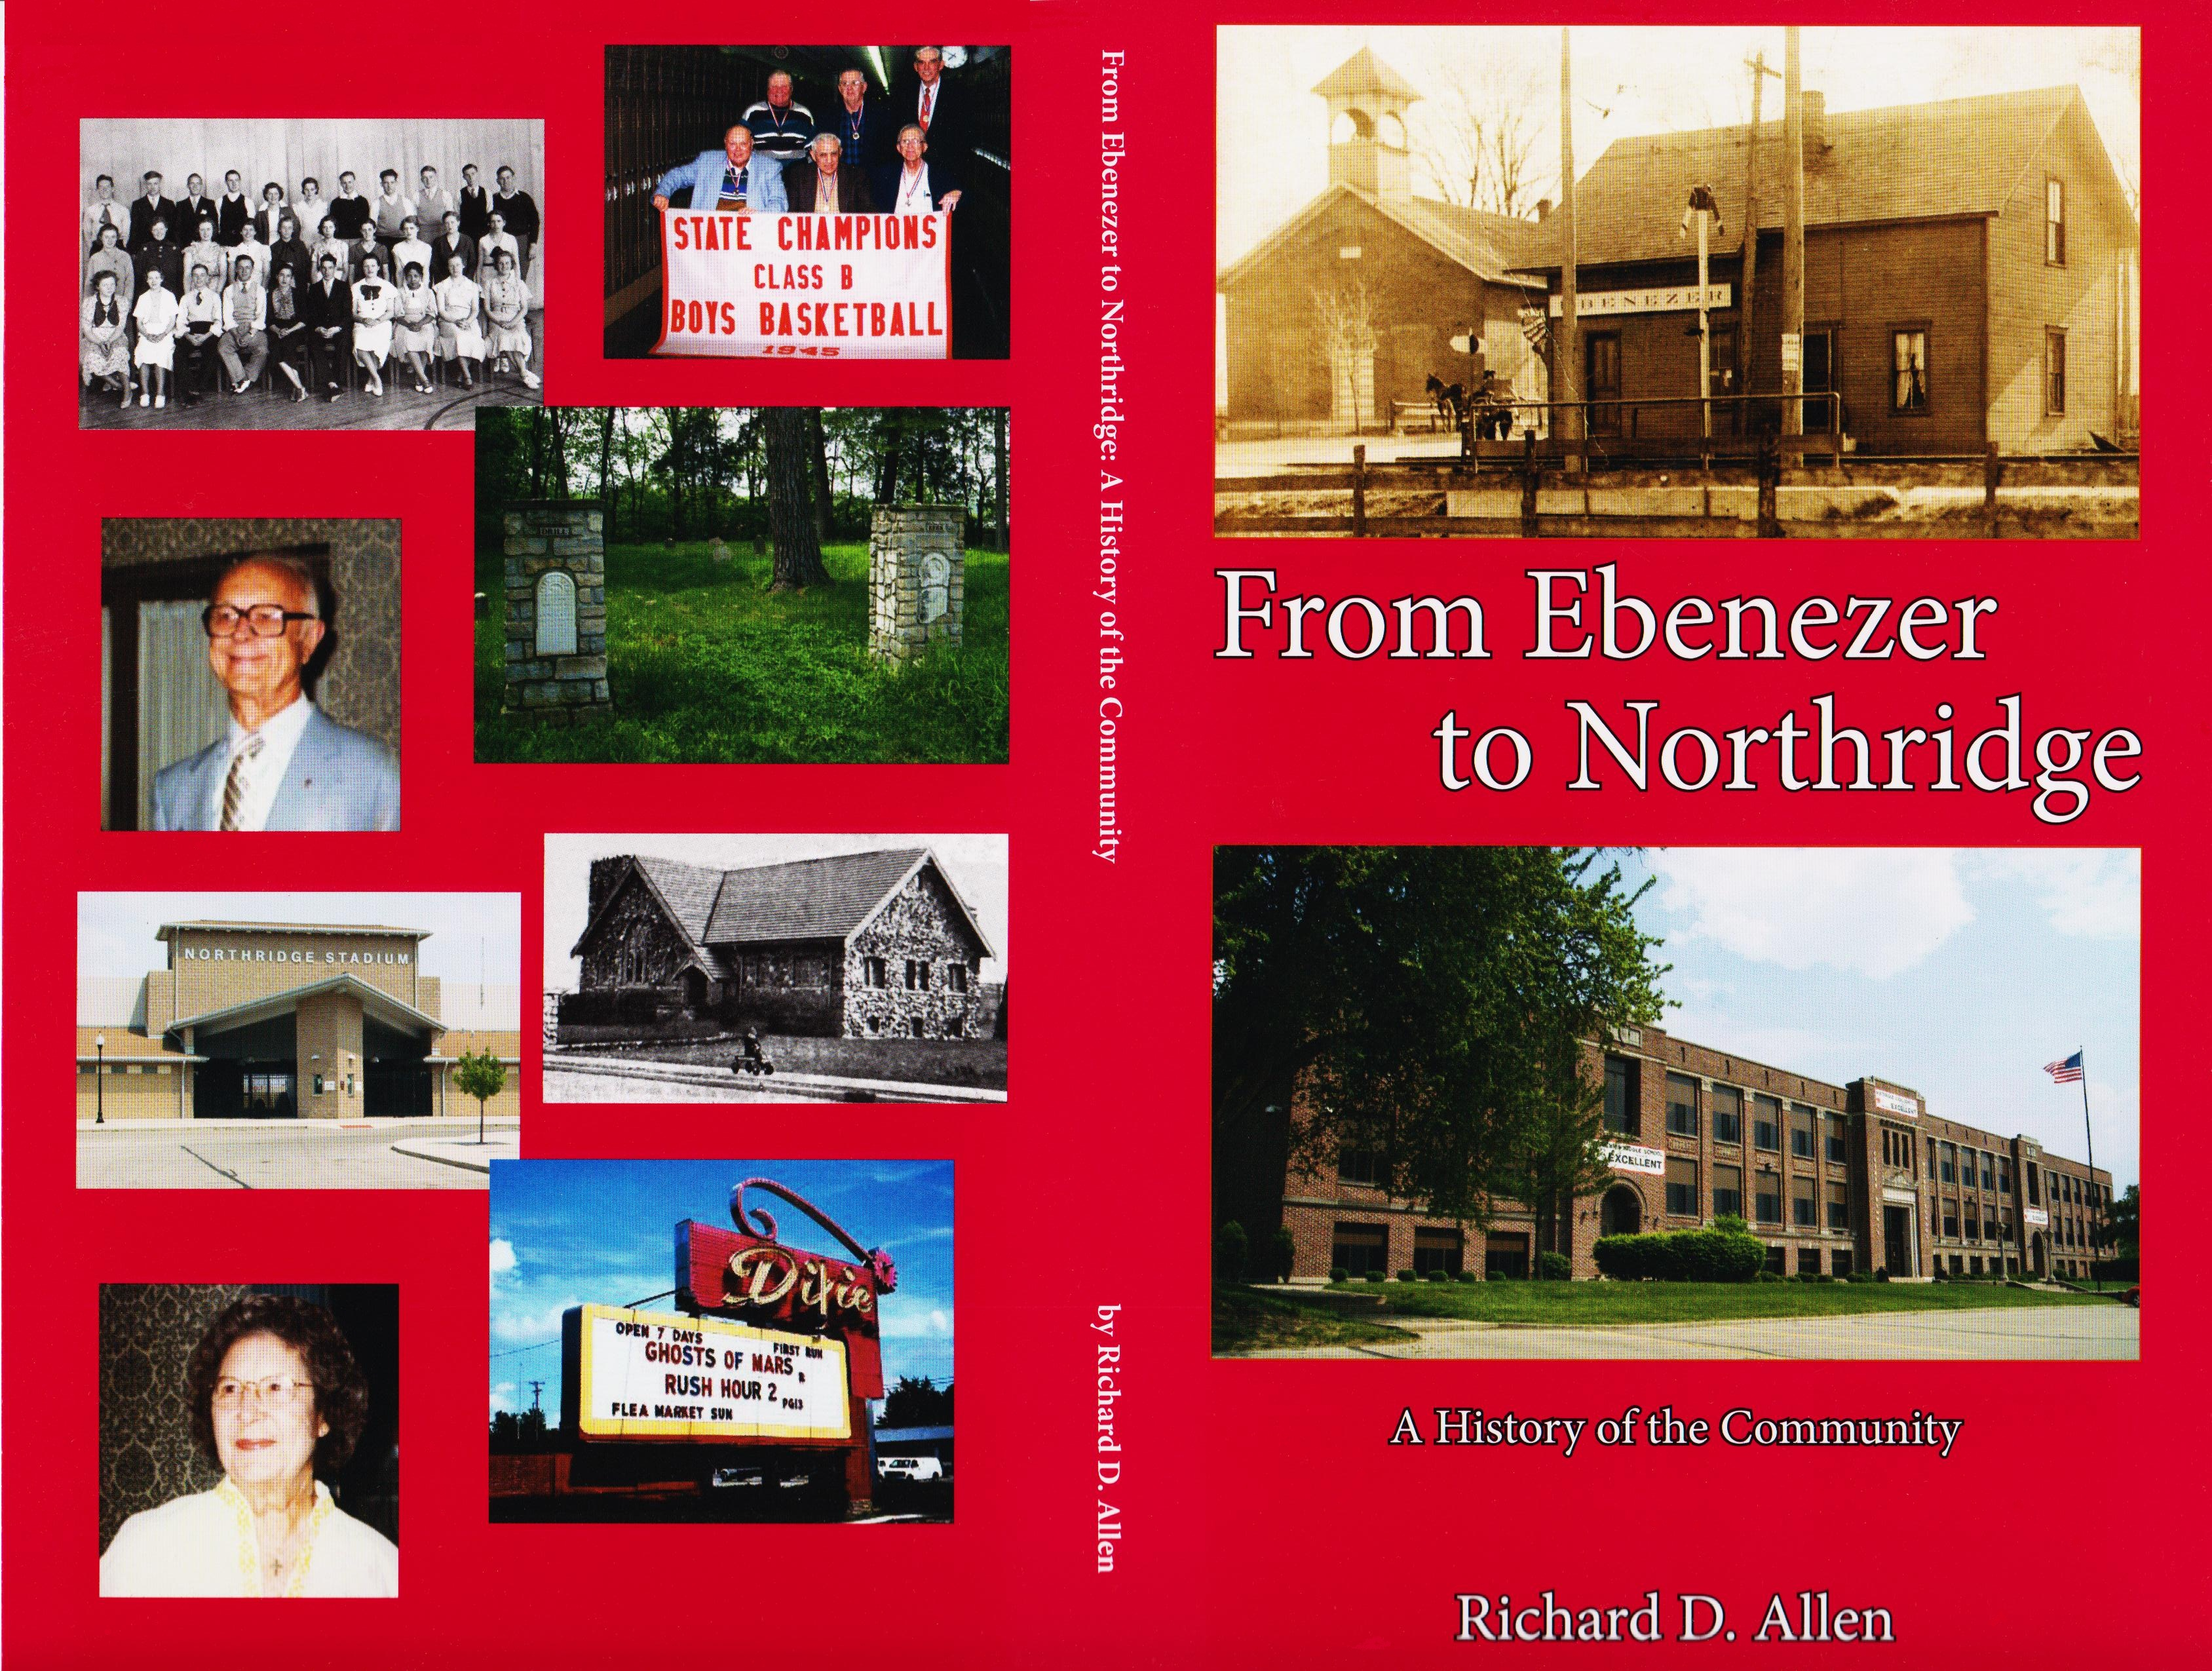 from.ebenezer.to.northridge.jpg